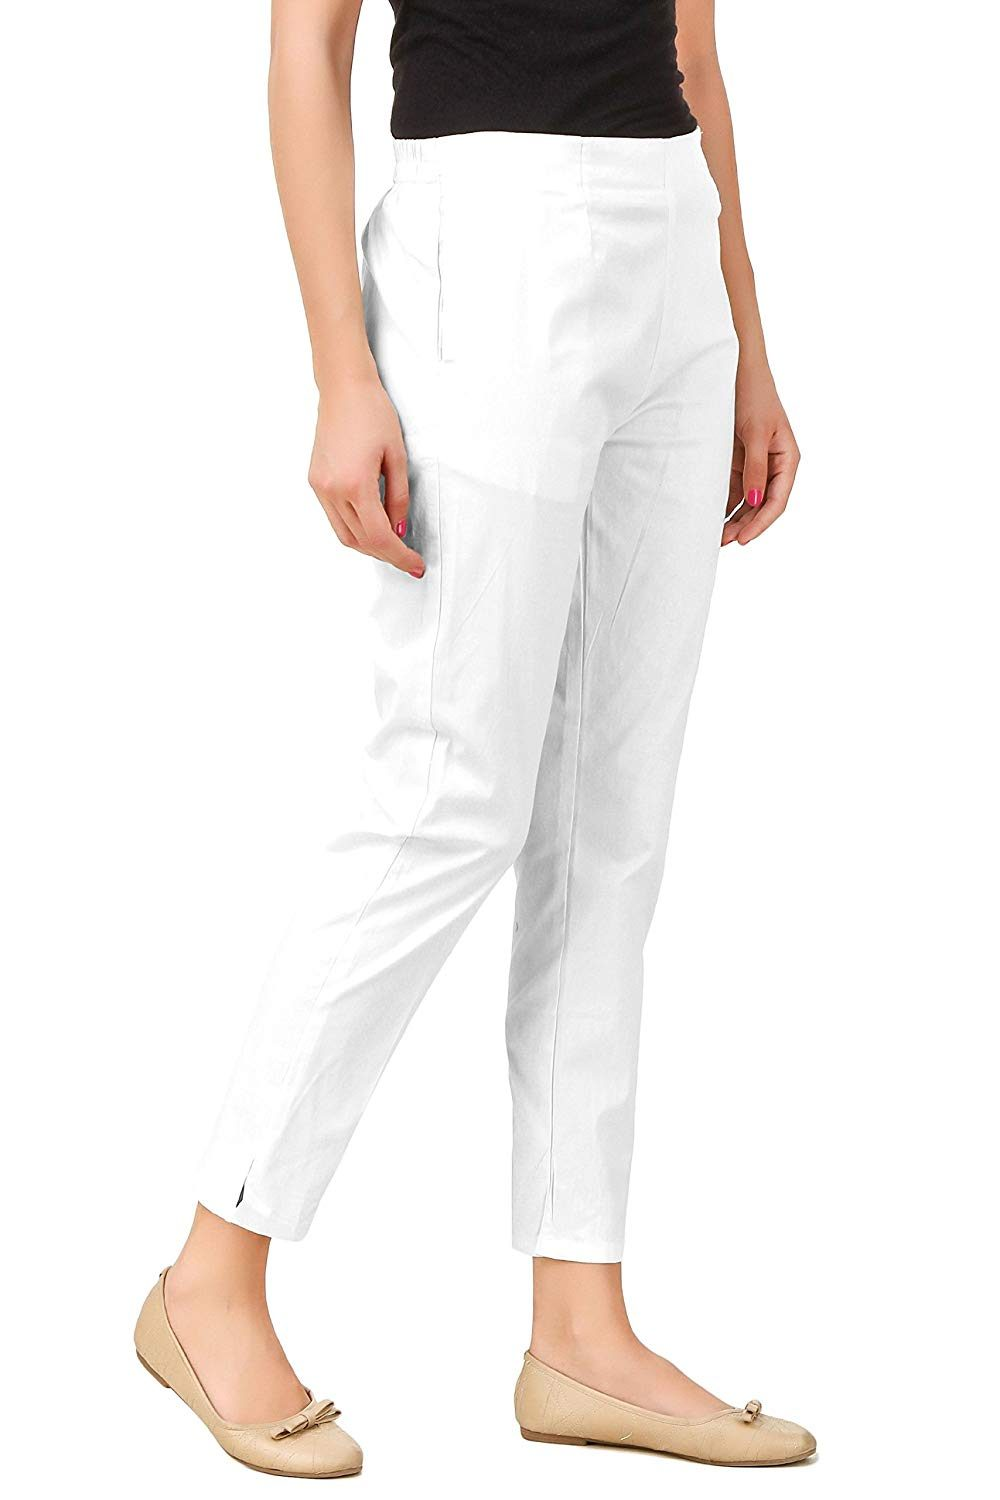 white trousers for women